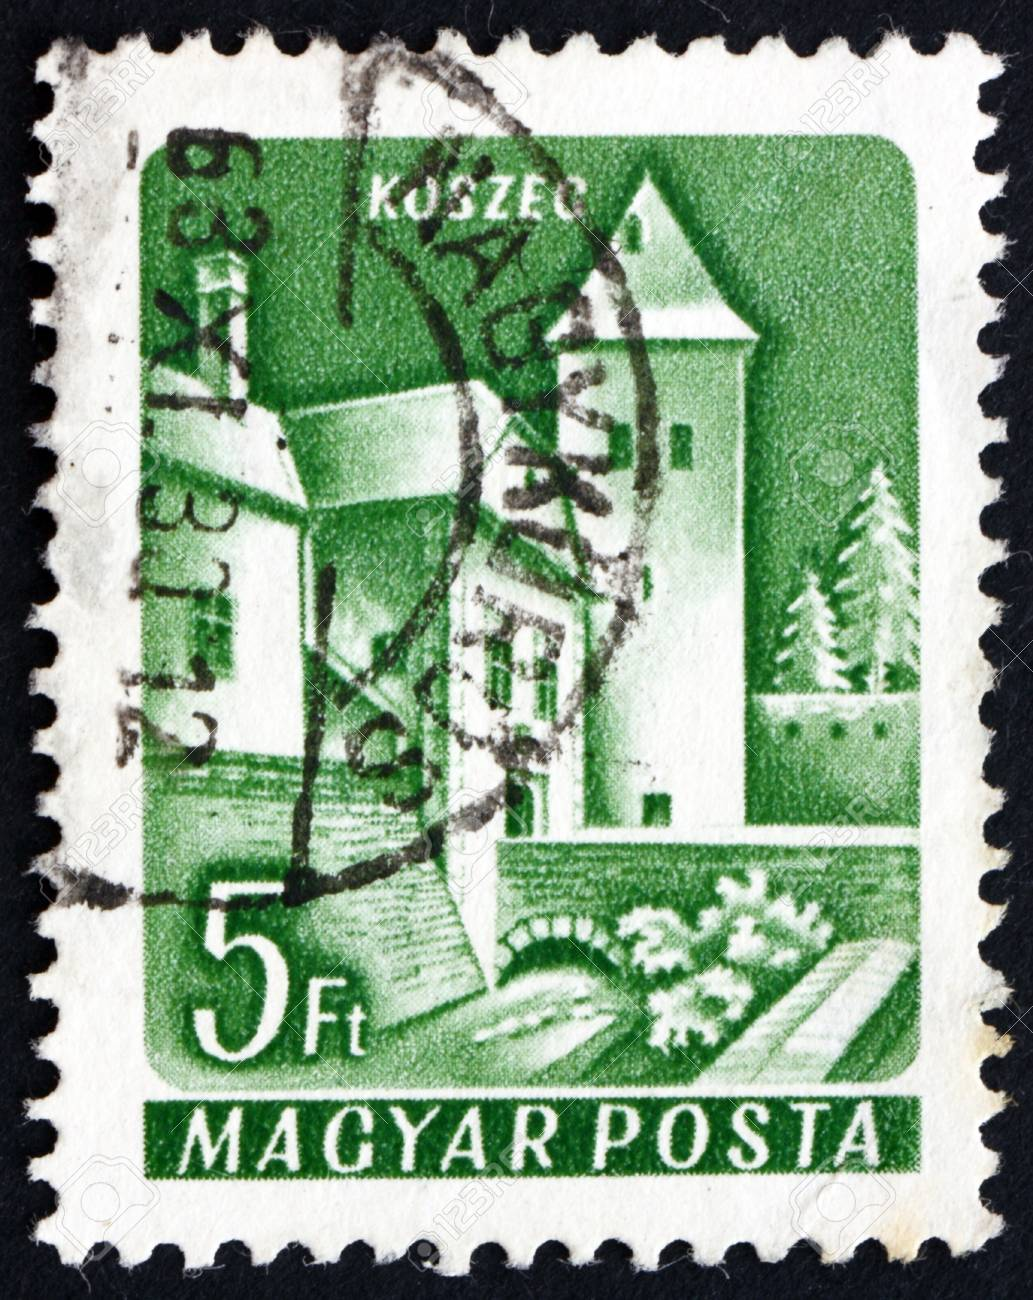 HUNGARY - CIRCA 1964: a stamp printed in the Hungary shows Castle of Koszeg, Hungary, circa 1964 Stock Photo - 17950695